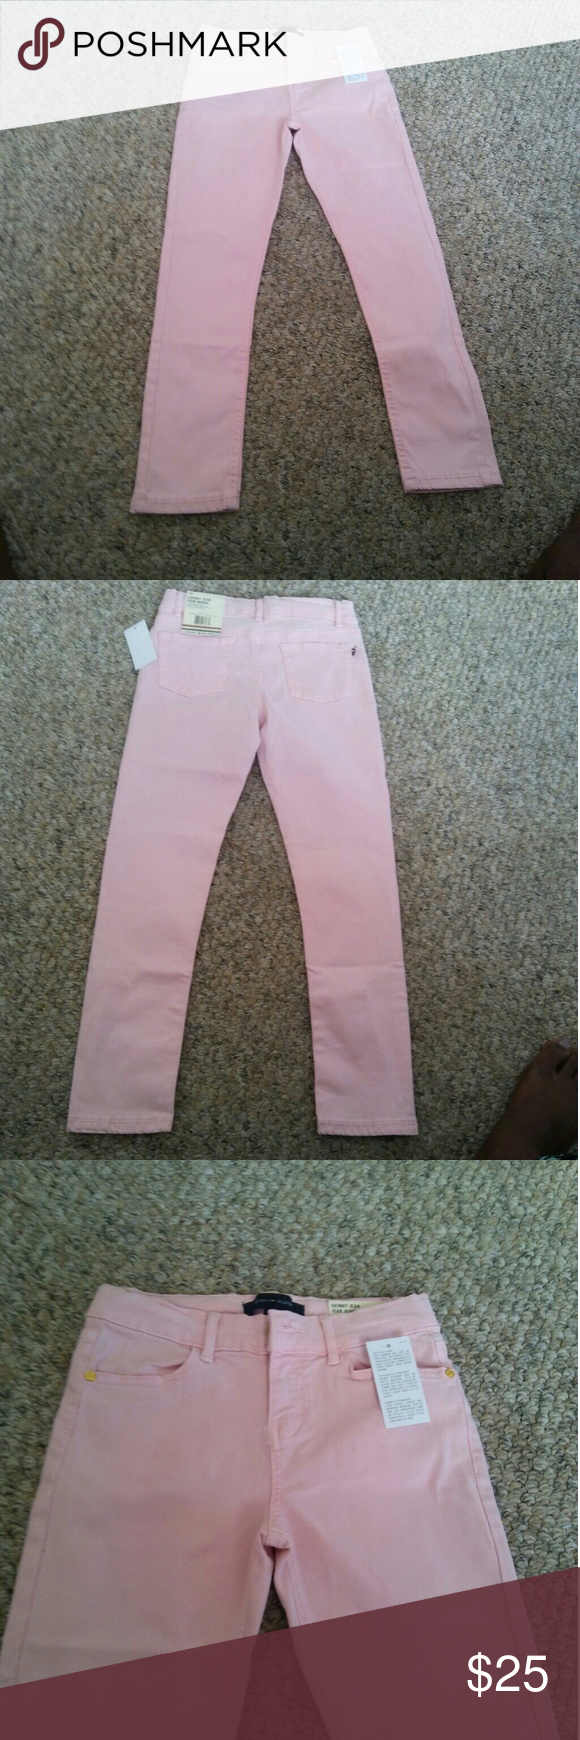 7d73c238f New with tag skinny jean mince by tommy hilfiger Crystal rose skinny jeans  for a girl